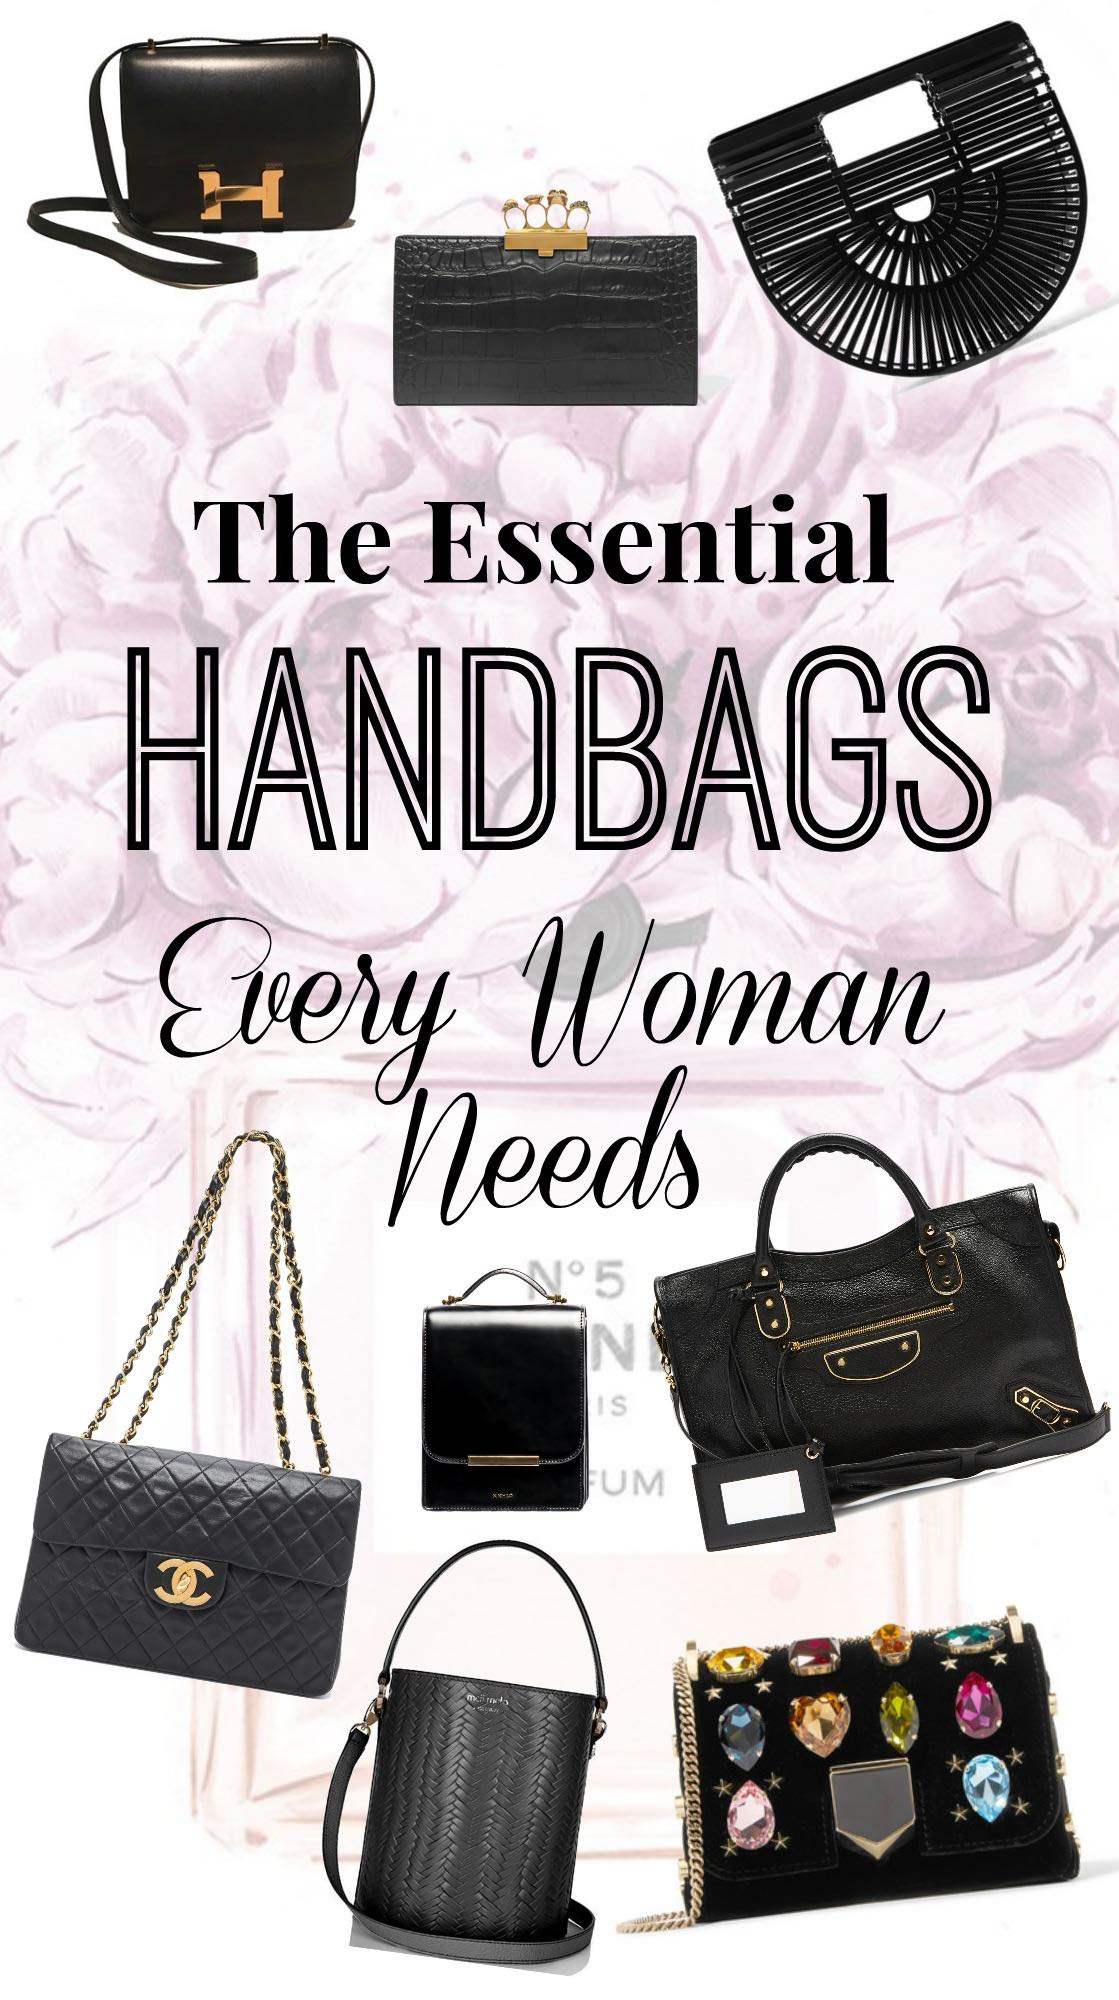 The Essential Handbags Every Woman Needs